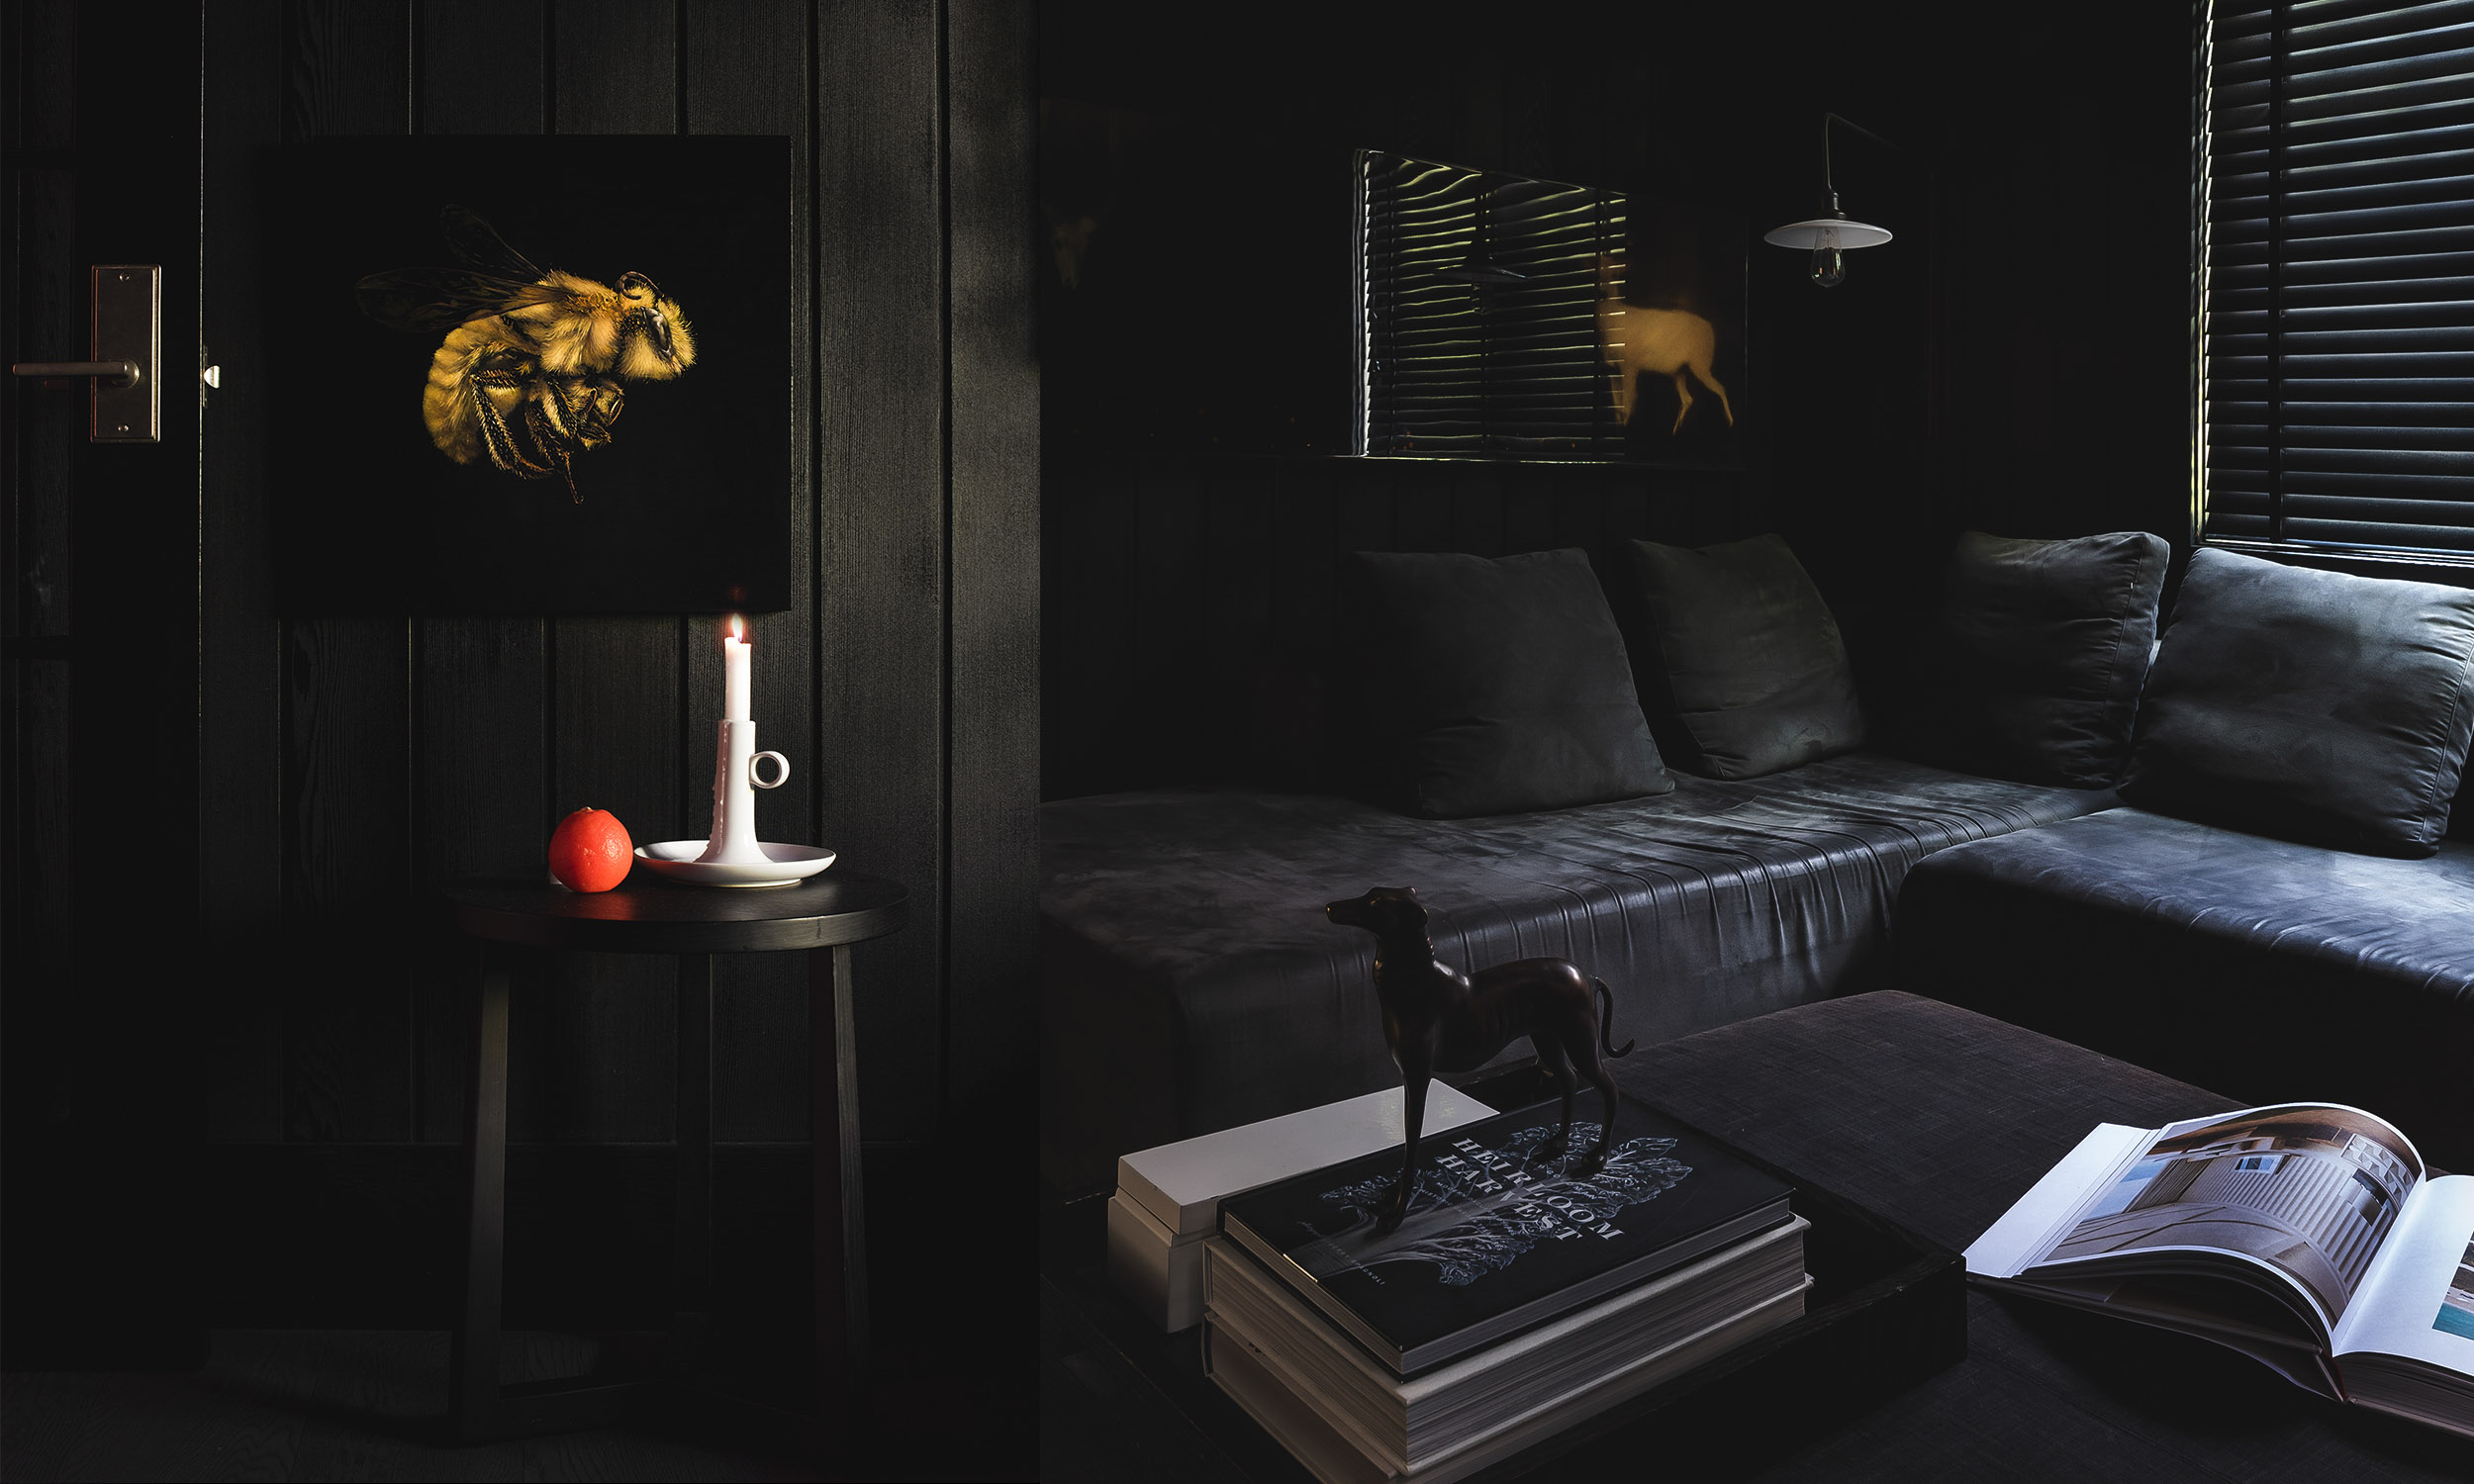 Moody Interior Photography.jpg